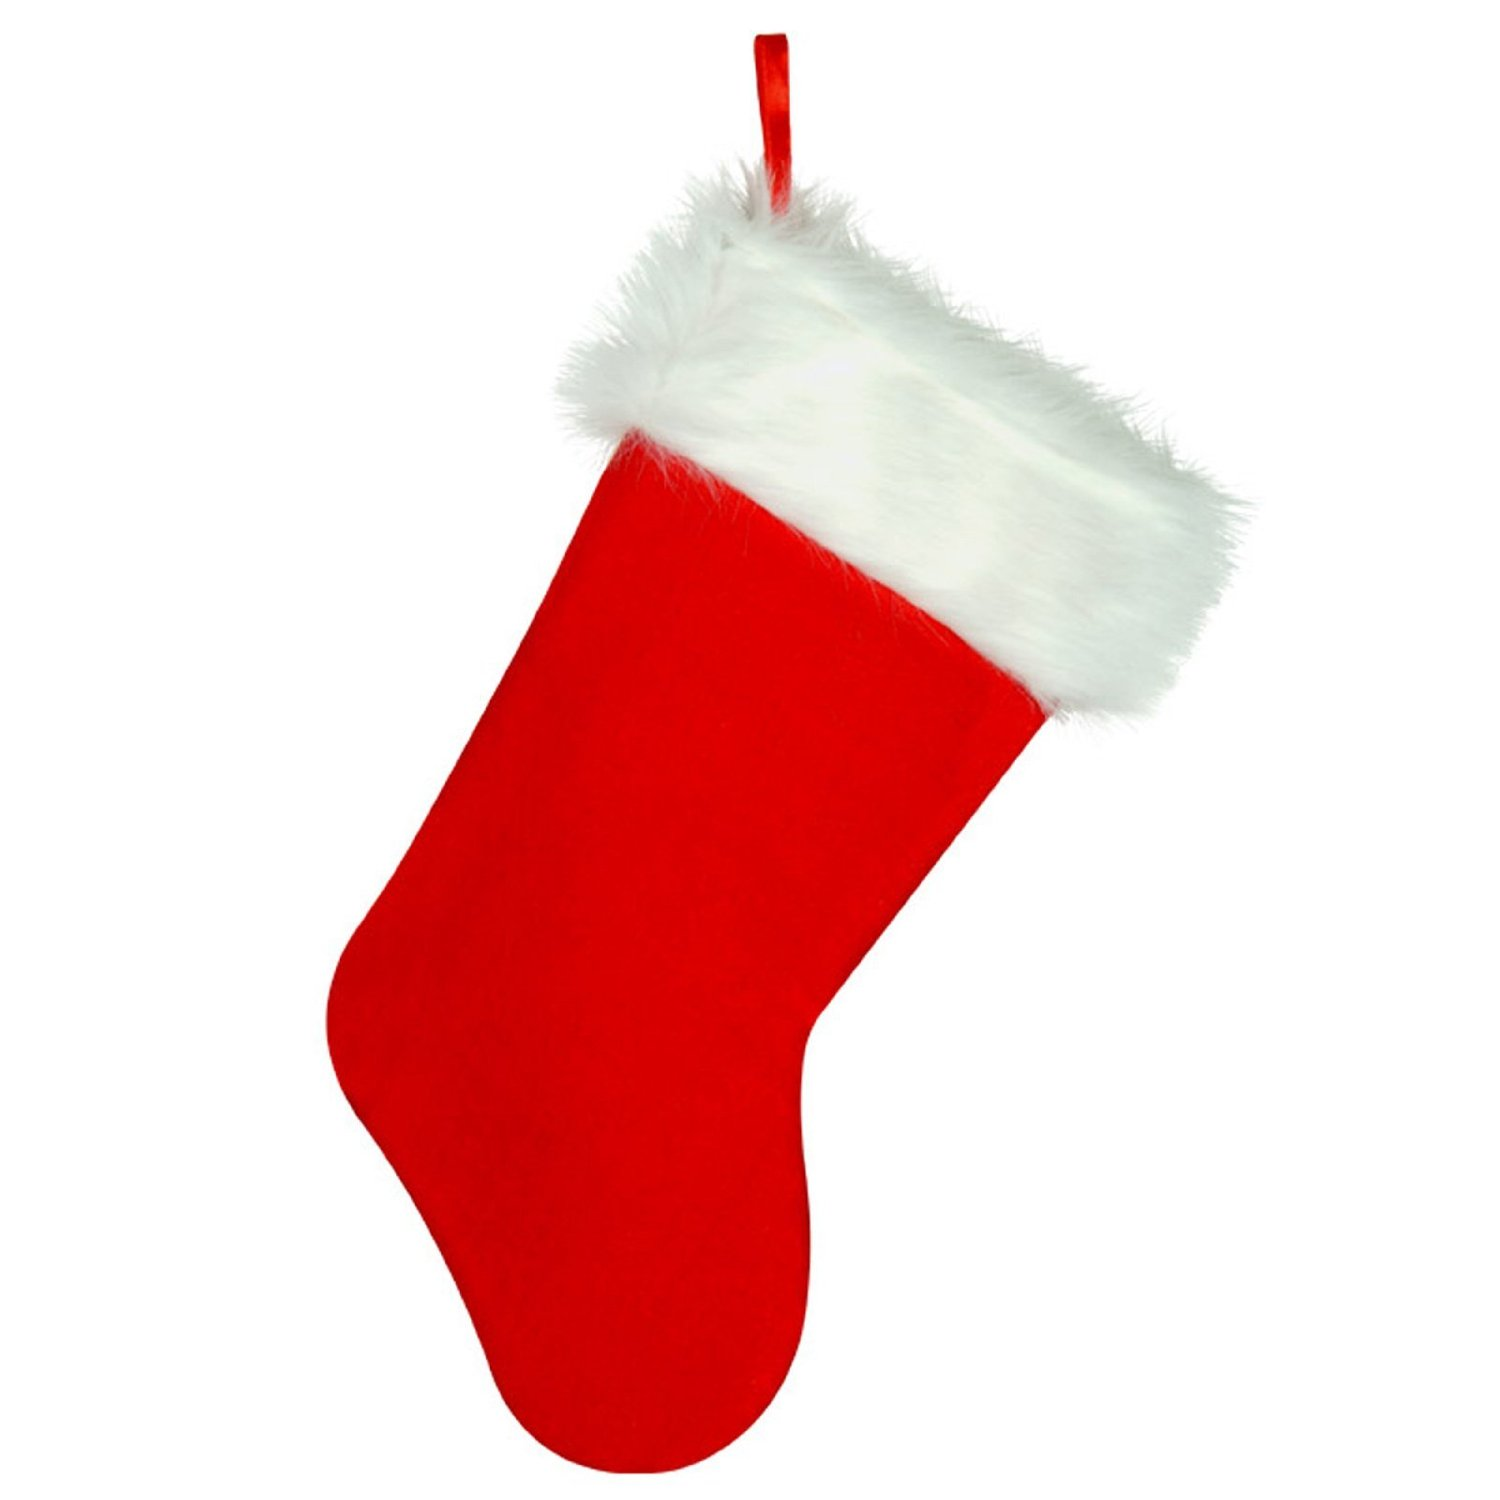 Free Pictures Of Christmas Stockings, Download Free Clip Art, Free.